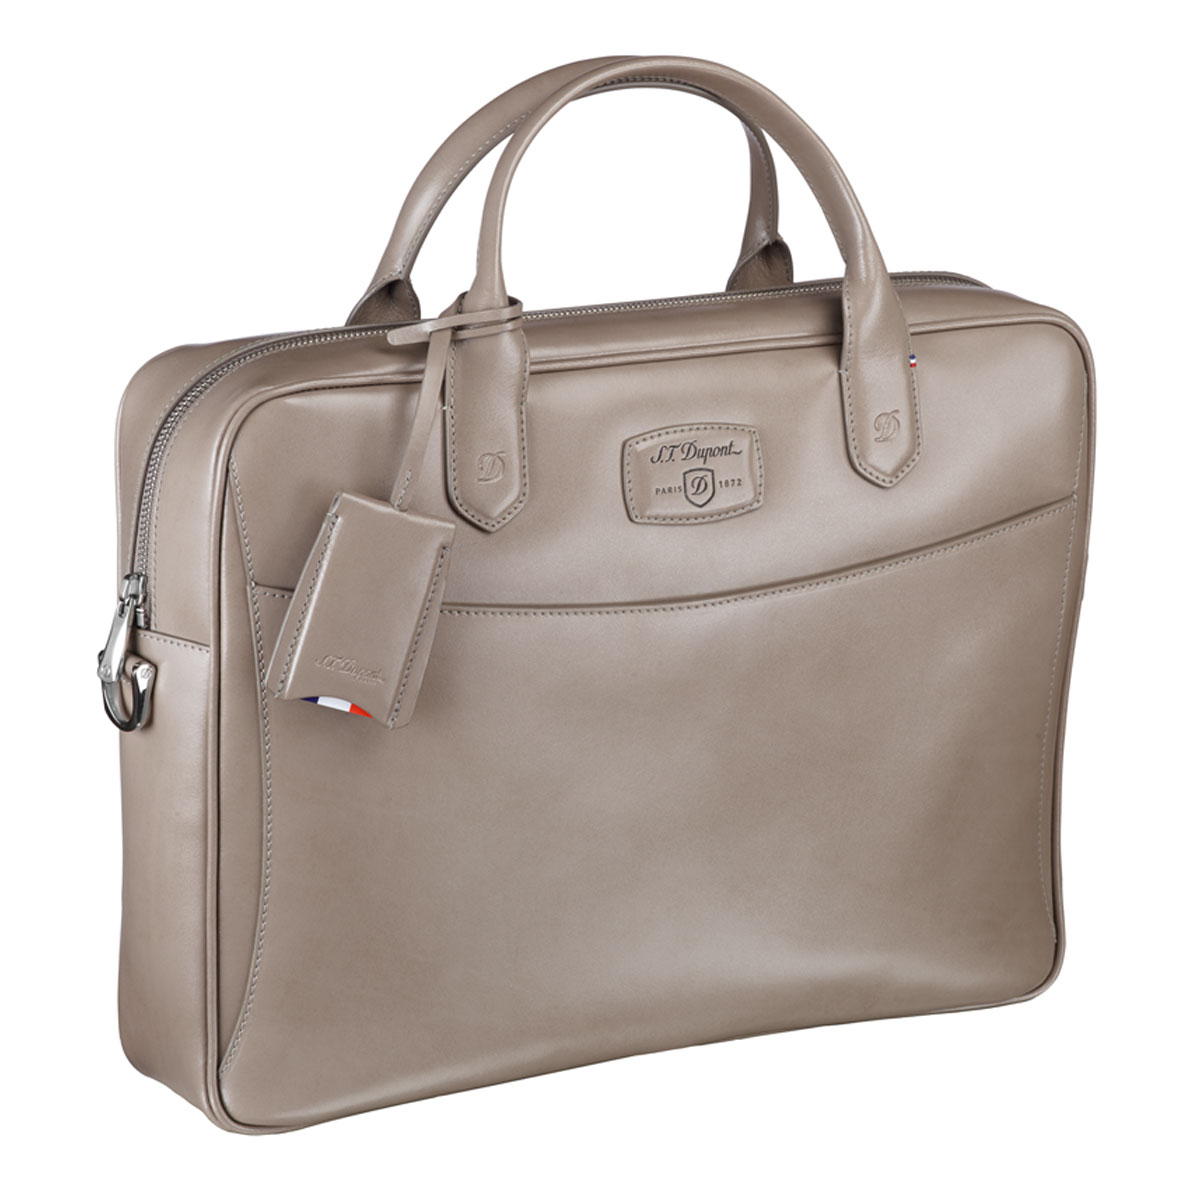 St dupont line d taupe leather document holder bag for Document holder bag